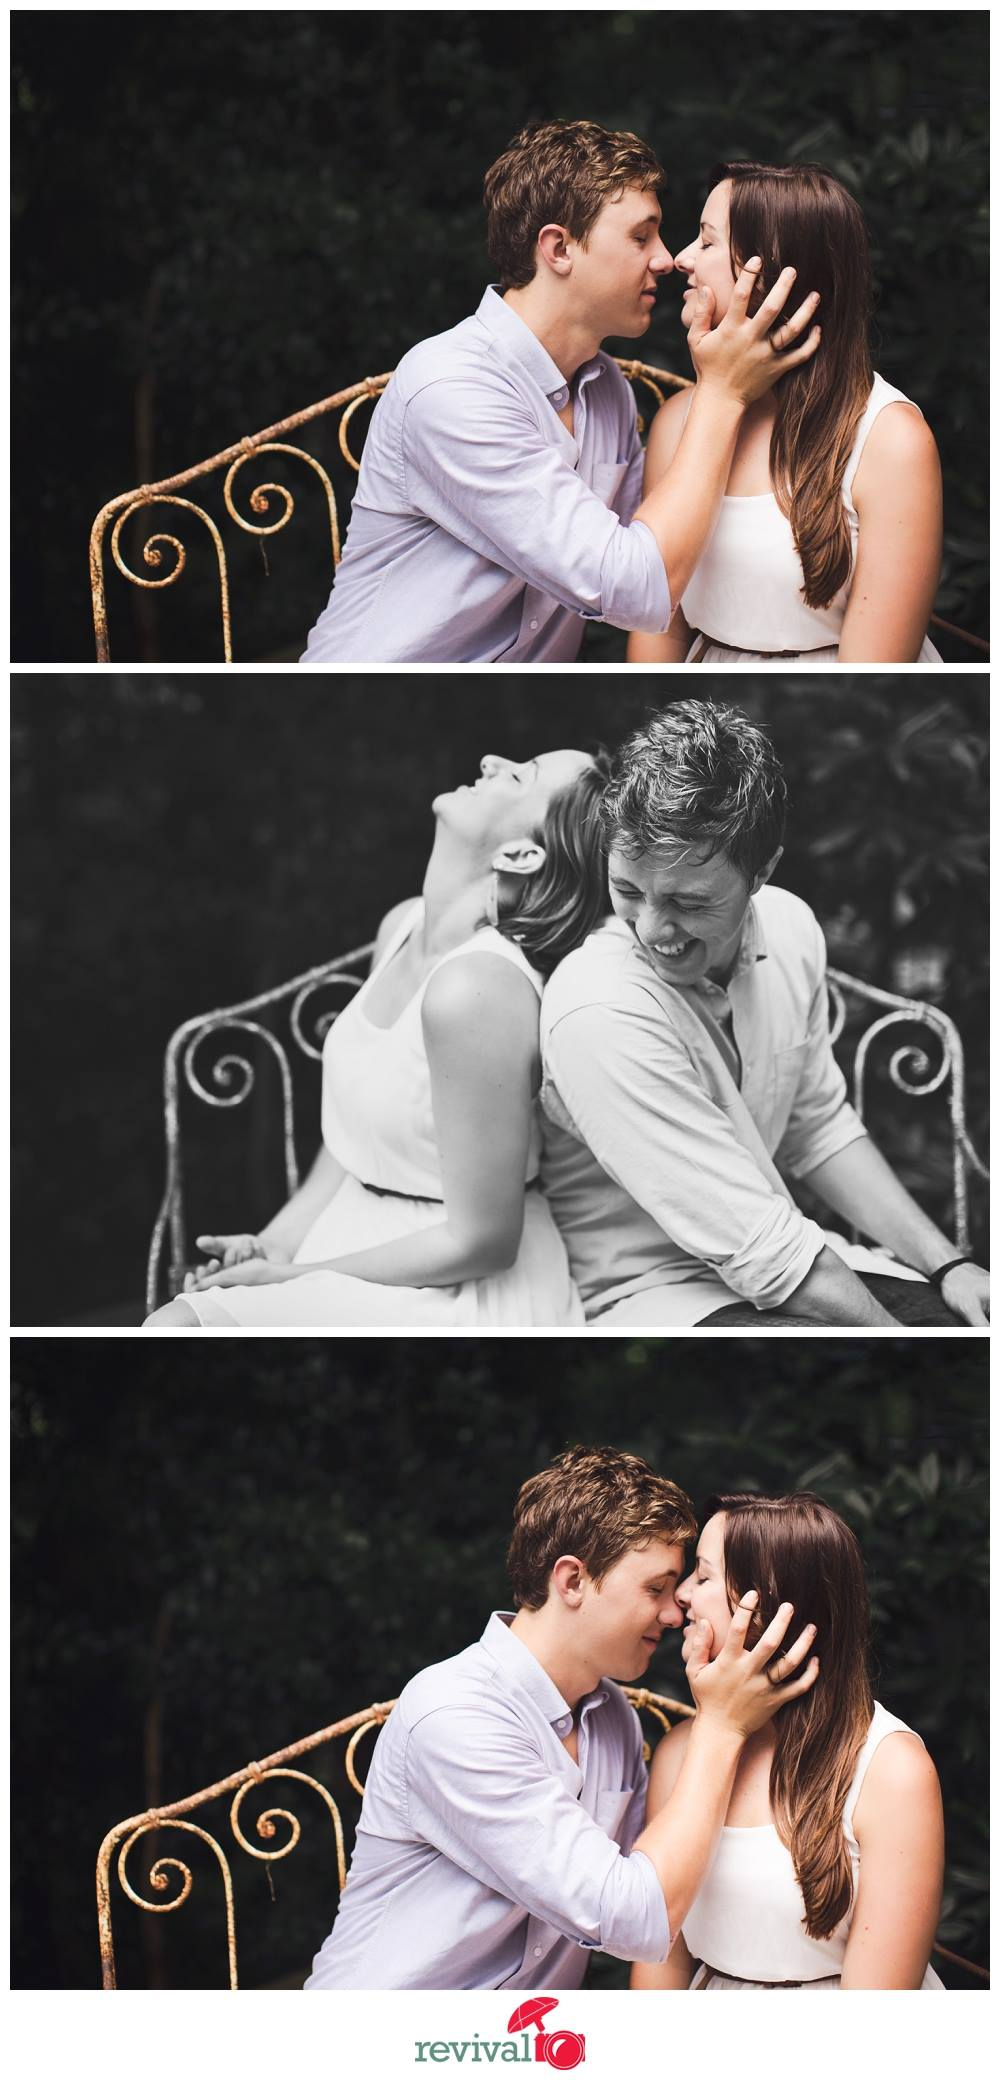 Engagement Session Photos by Revival Photography